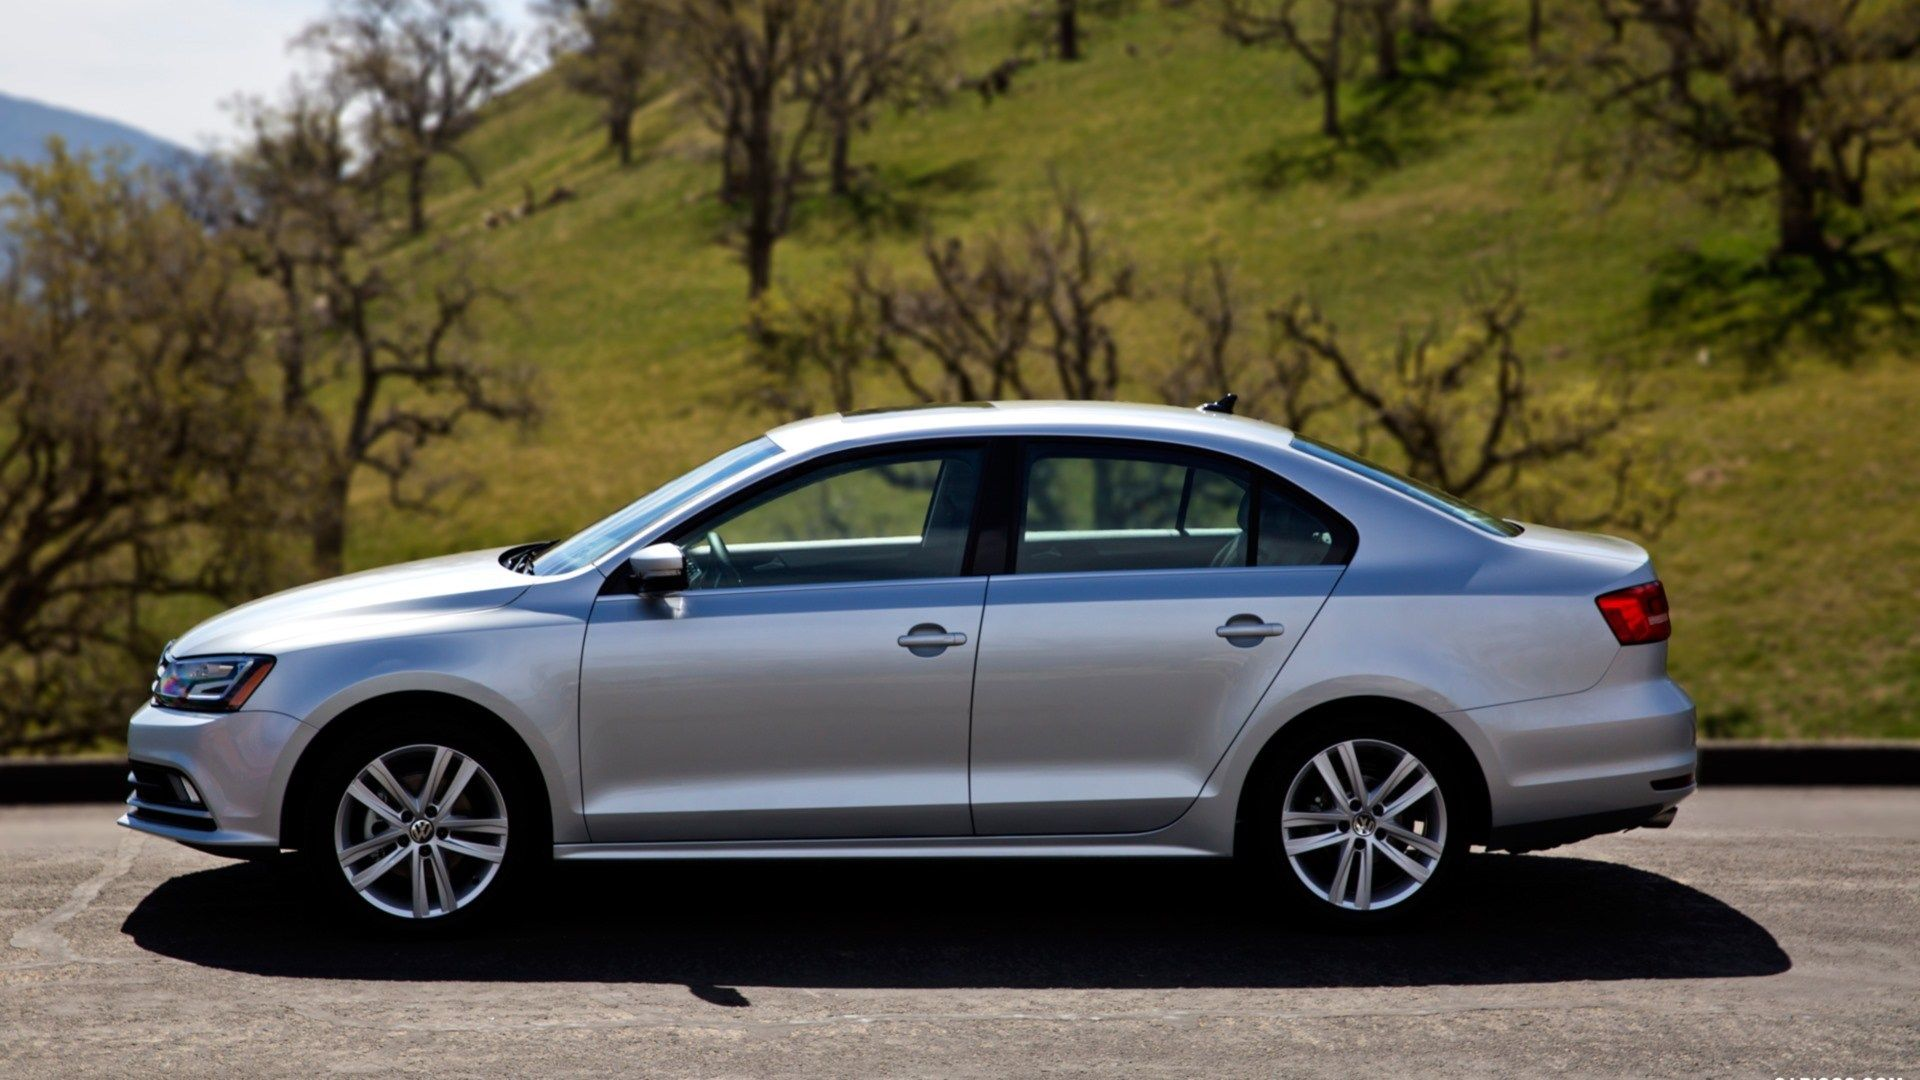 2015 volkswagen jetta free desktop wallpaper 293 kB